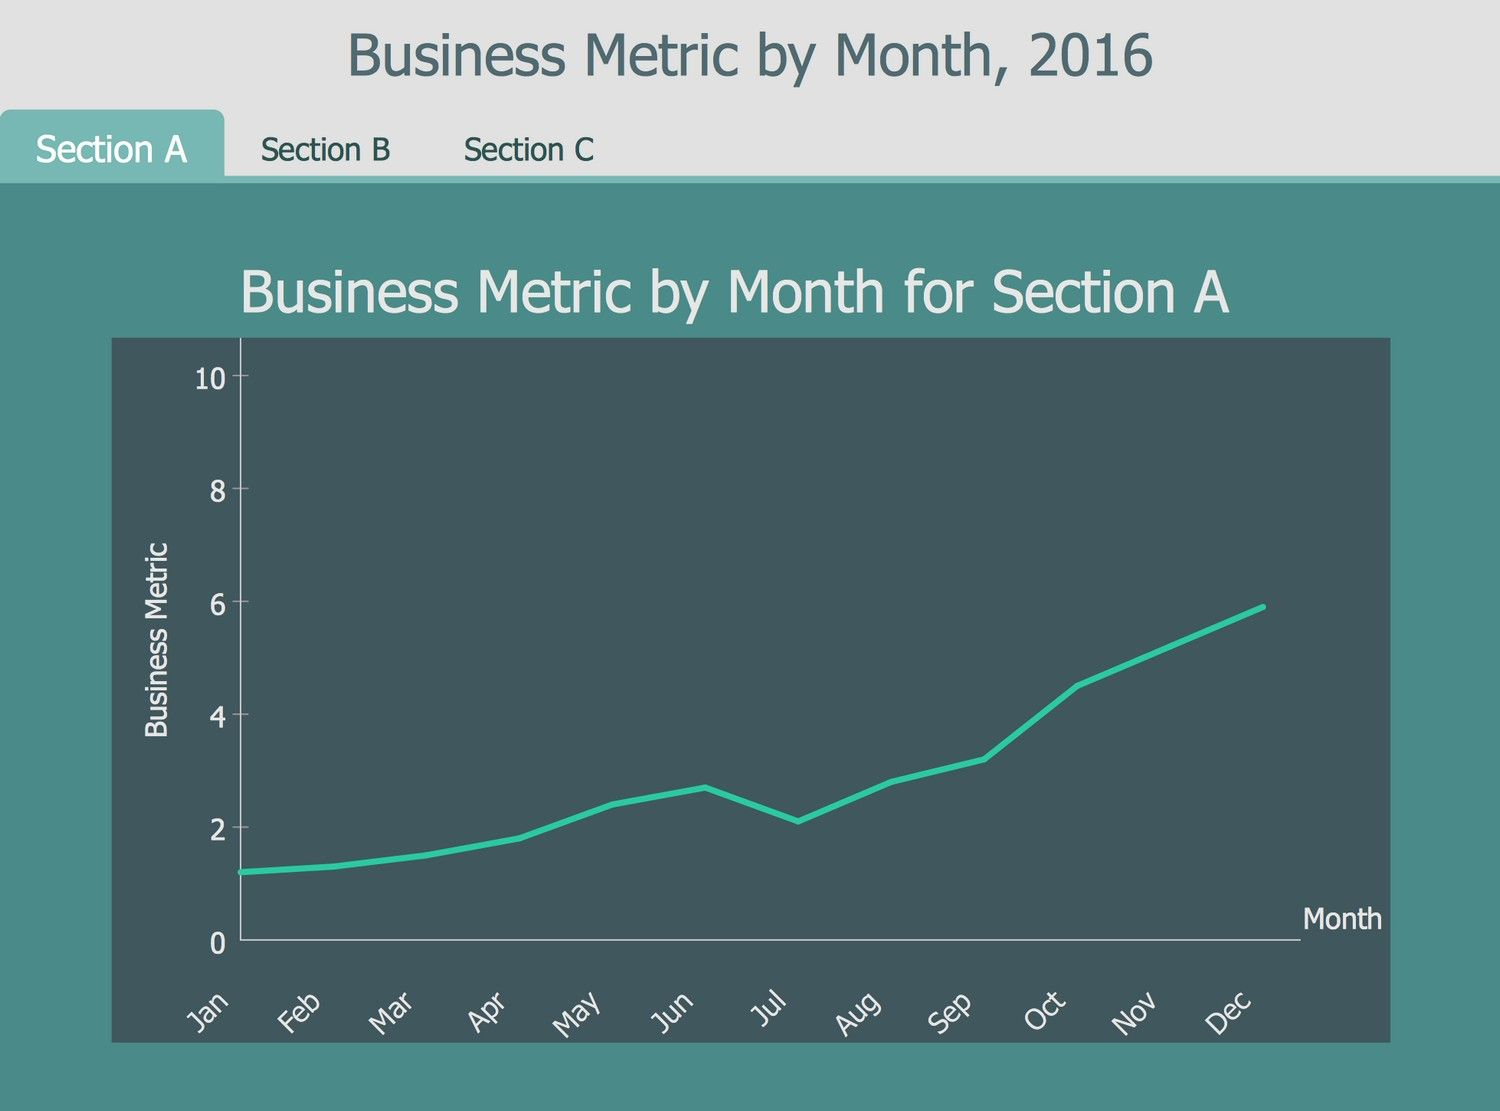 Template business metric by month 2016 for 3 sections the template business metric by month 2016 for 3 sections the business intelligence solutions flashek Image collections